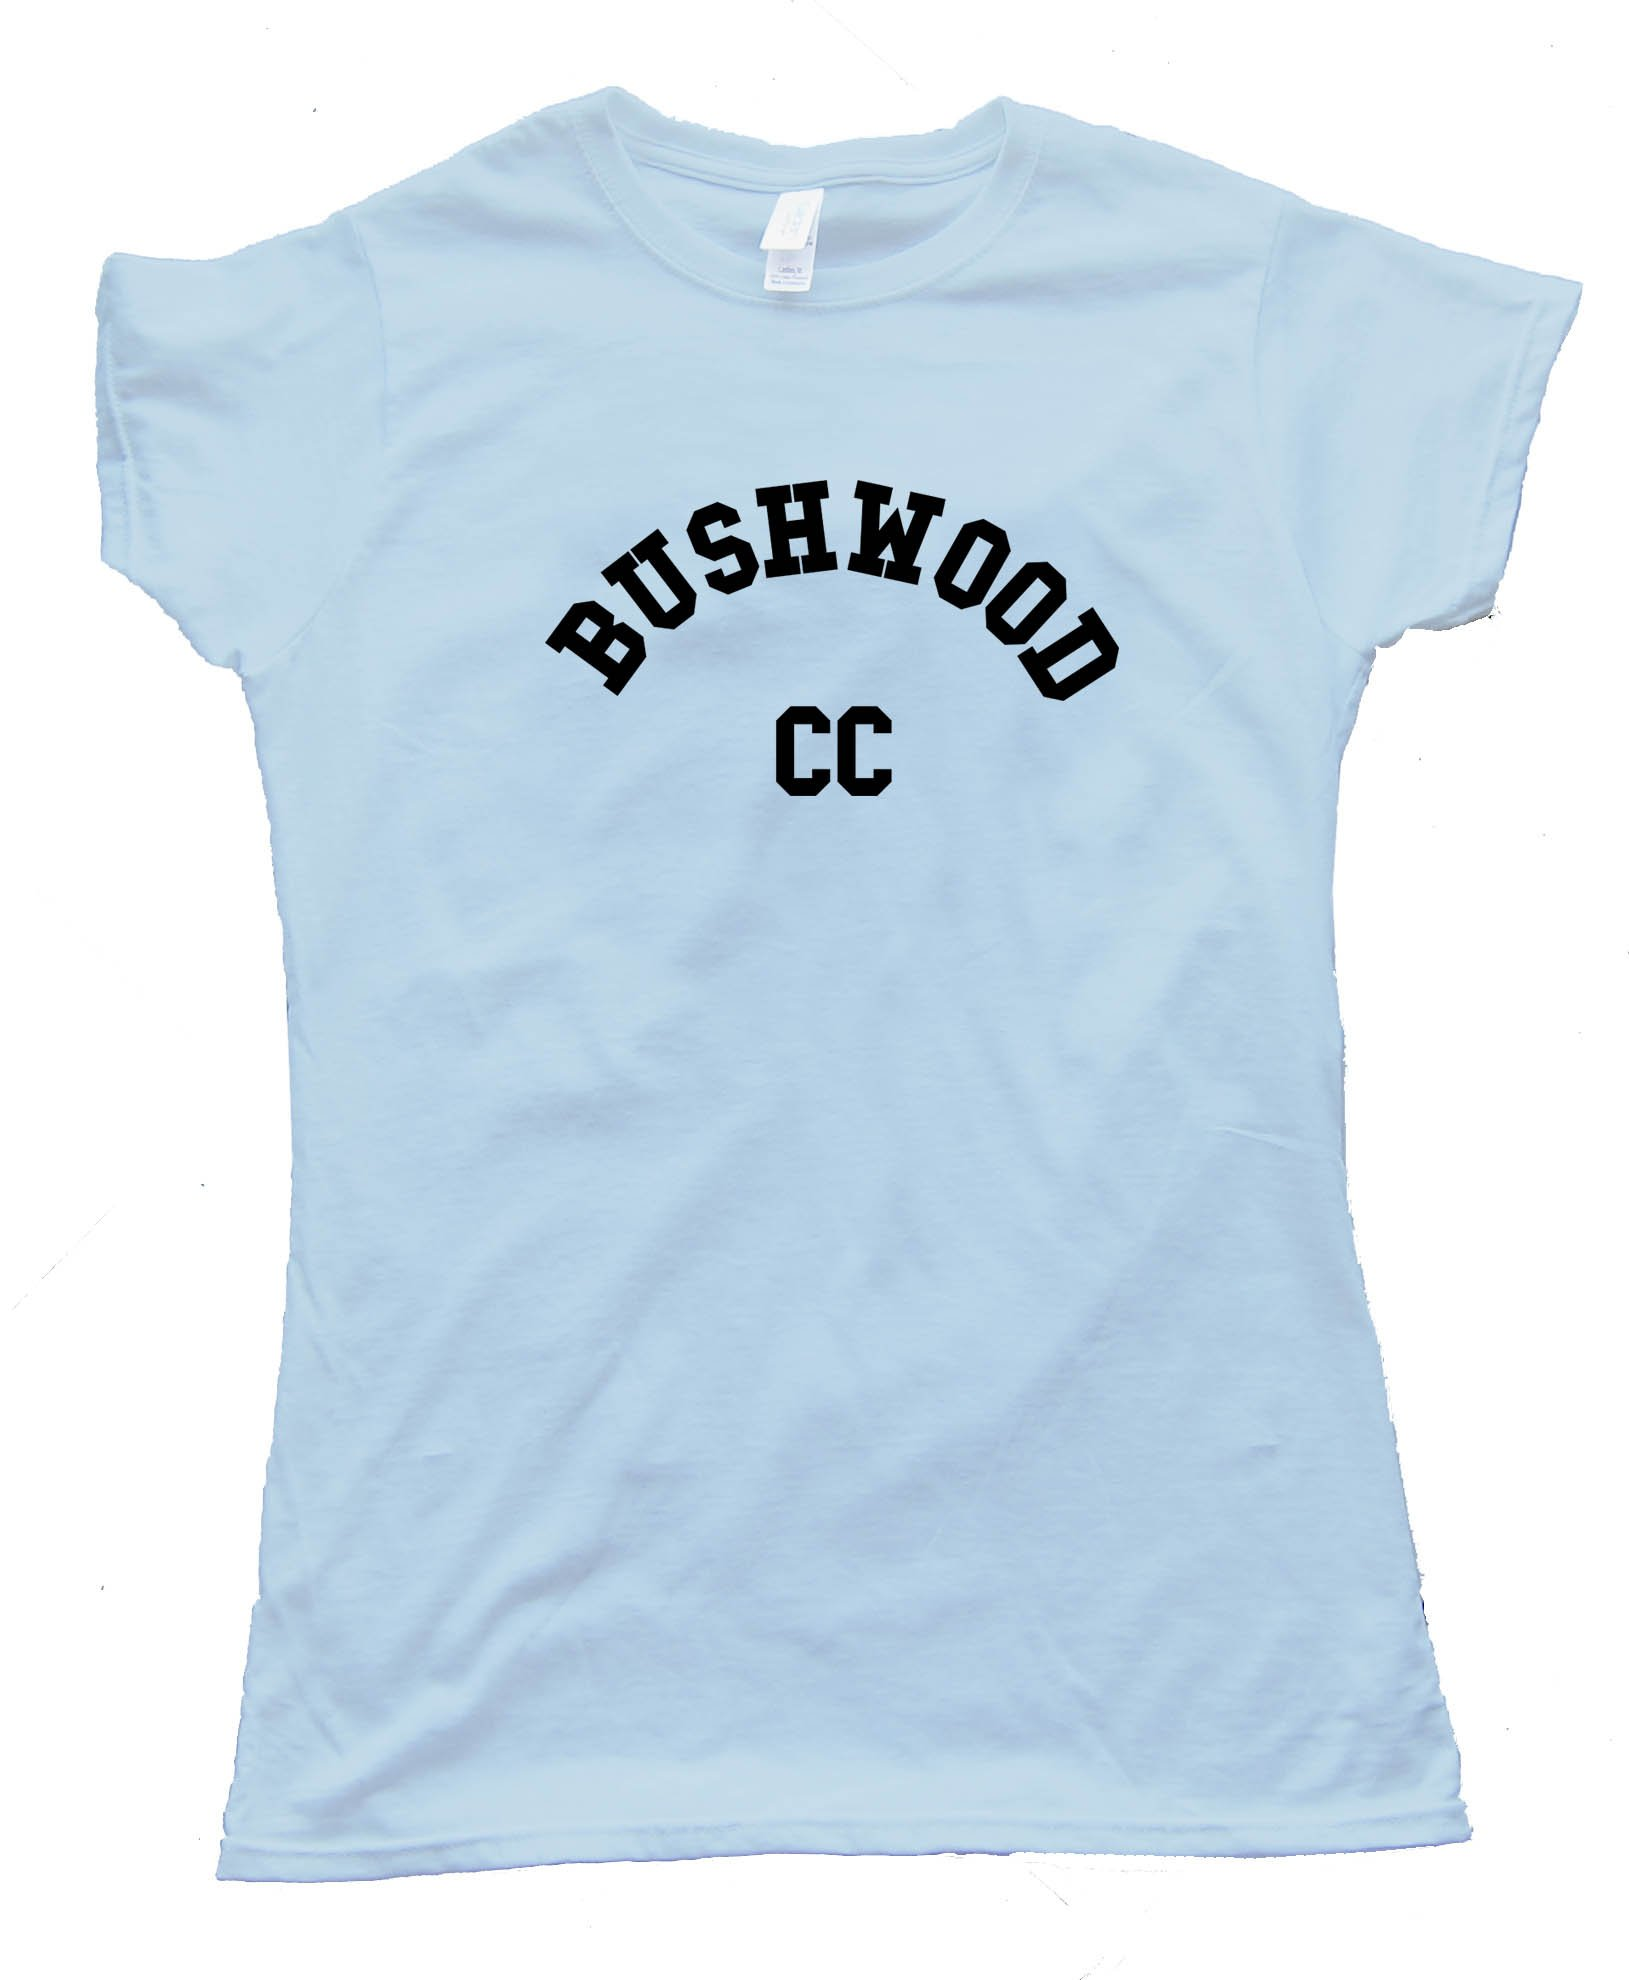 Womens Bushwood Country Club Caddyshack - Tee Shirt